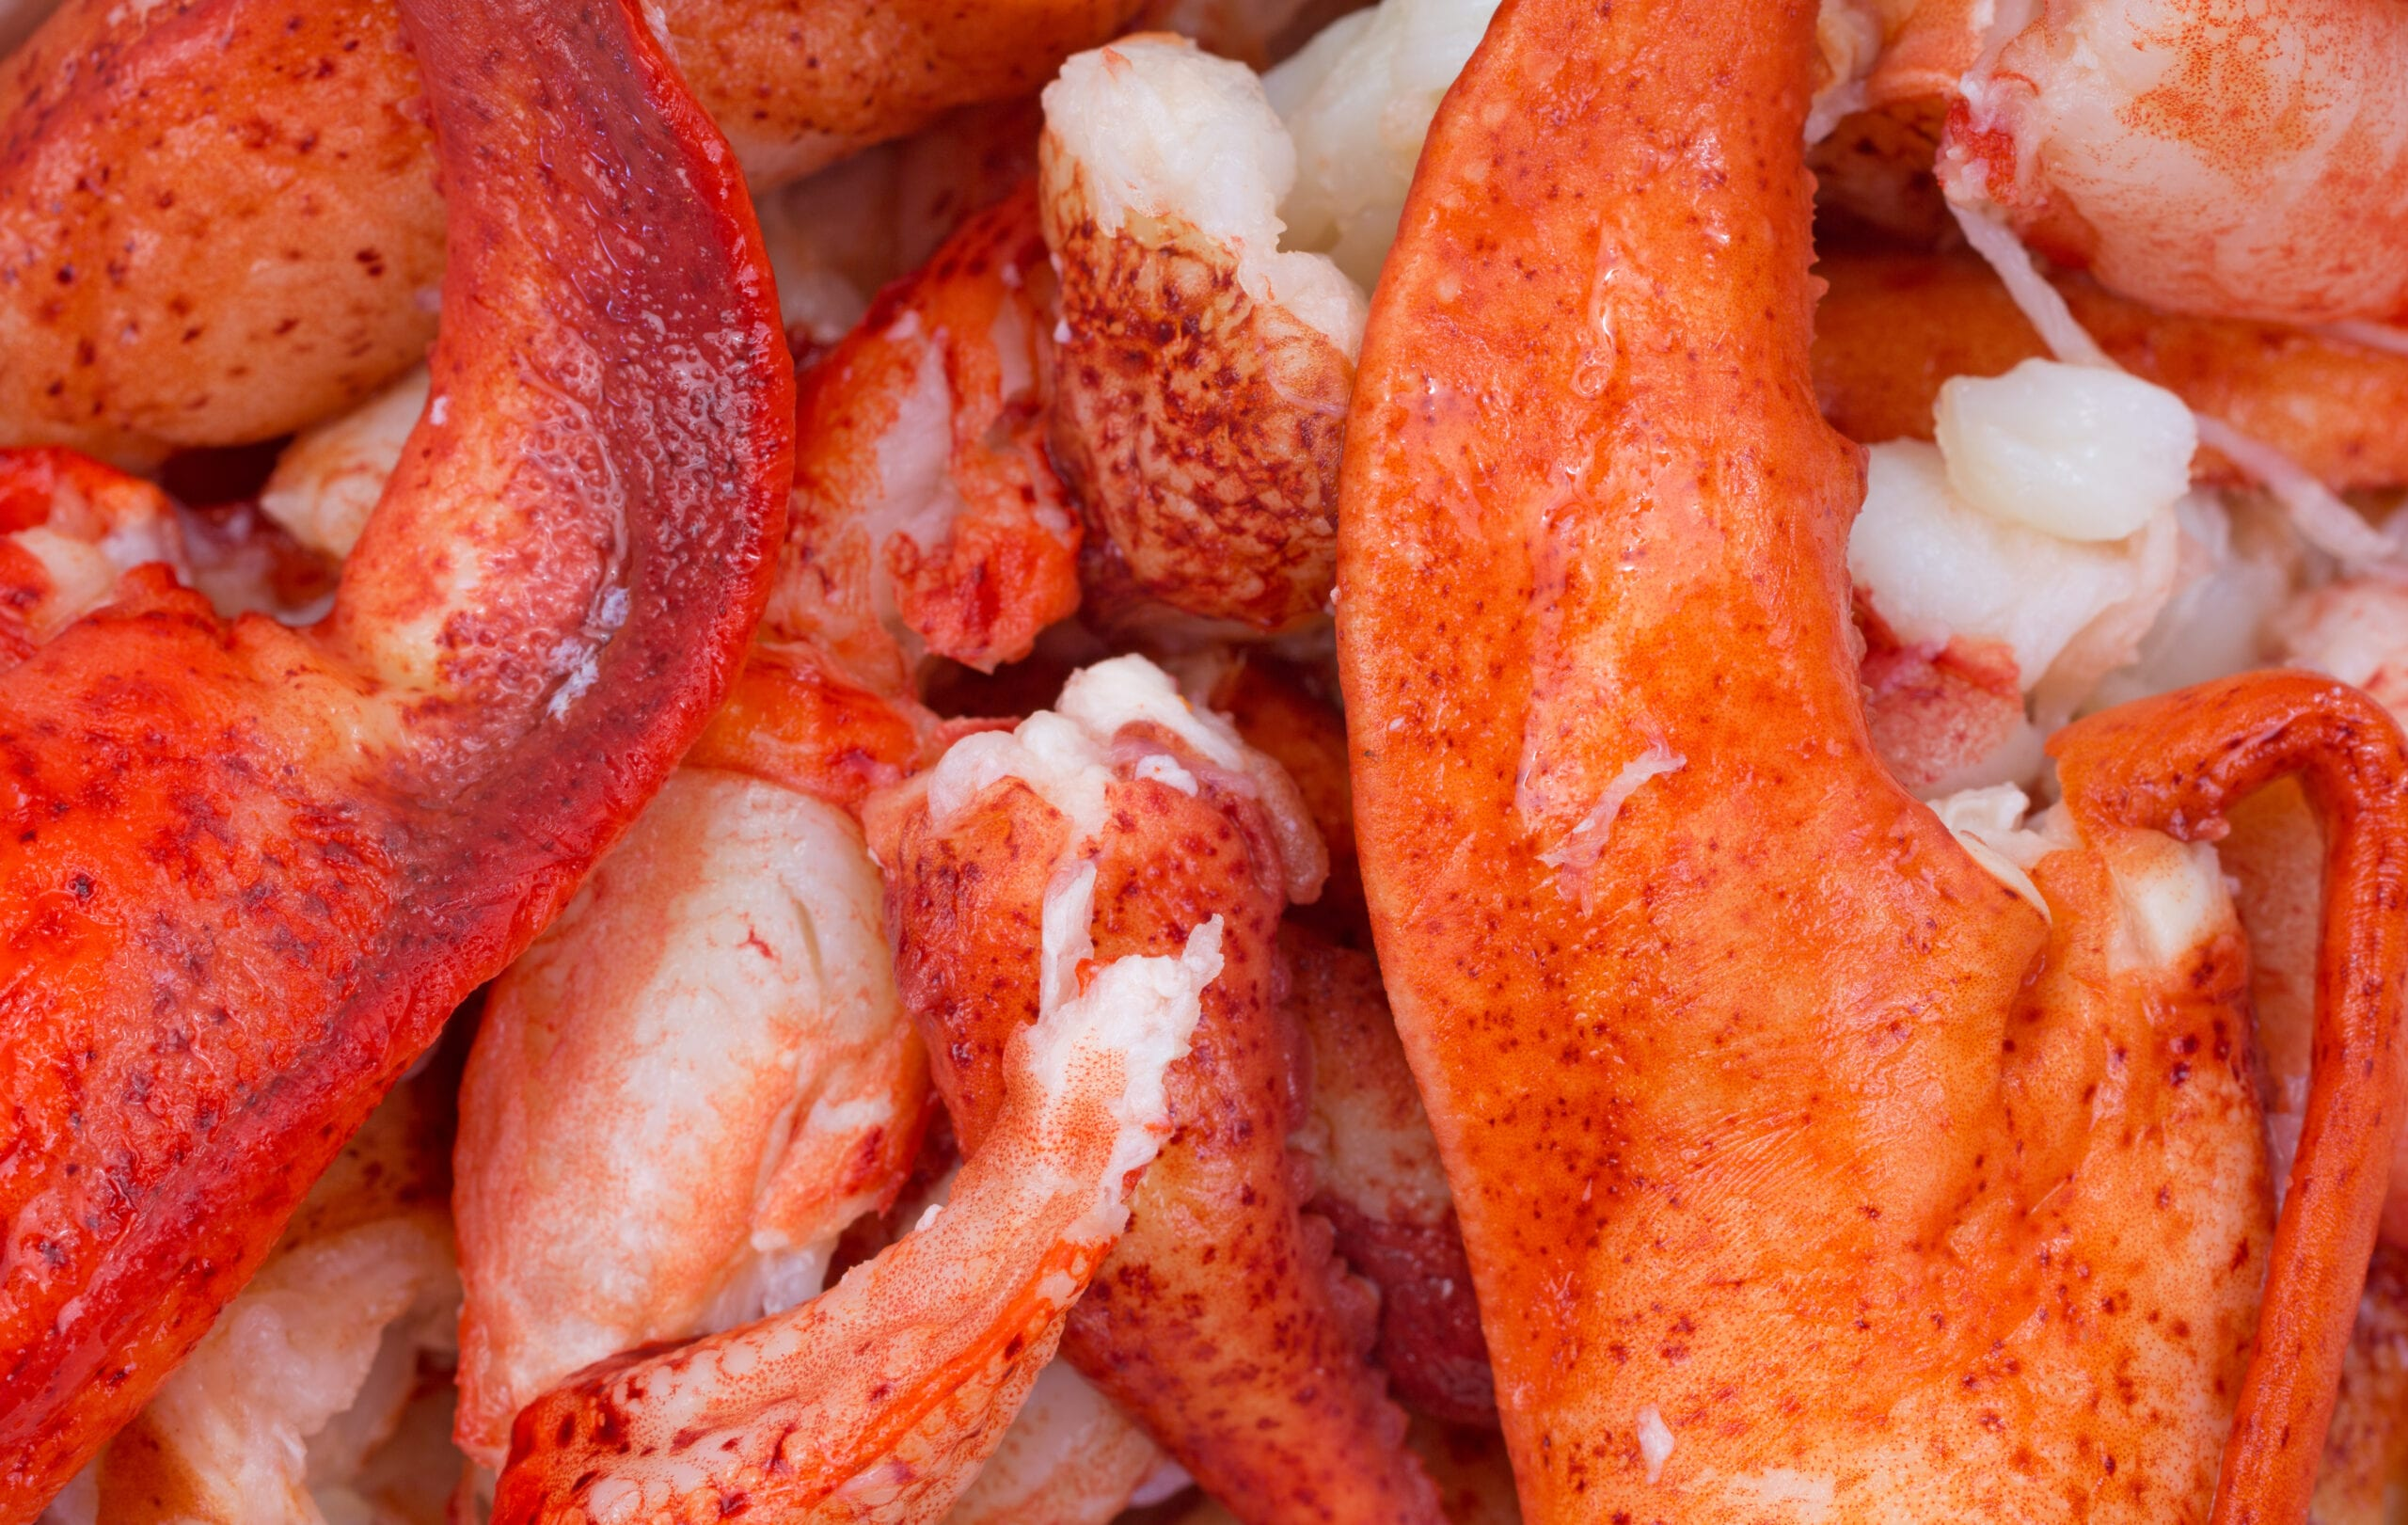 Where to Get the Best Fresh Picked Maine Lobster Meat